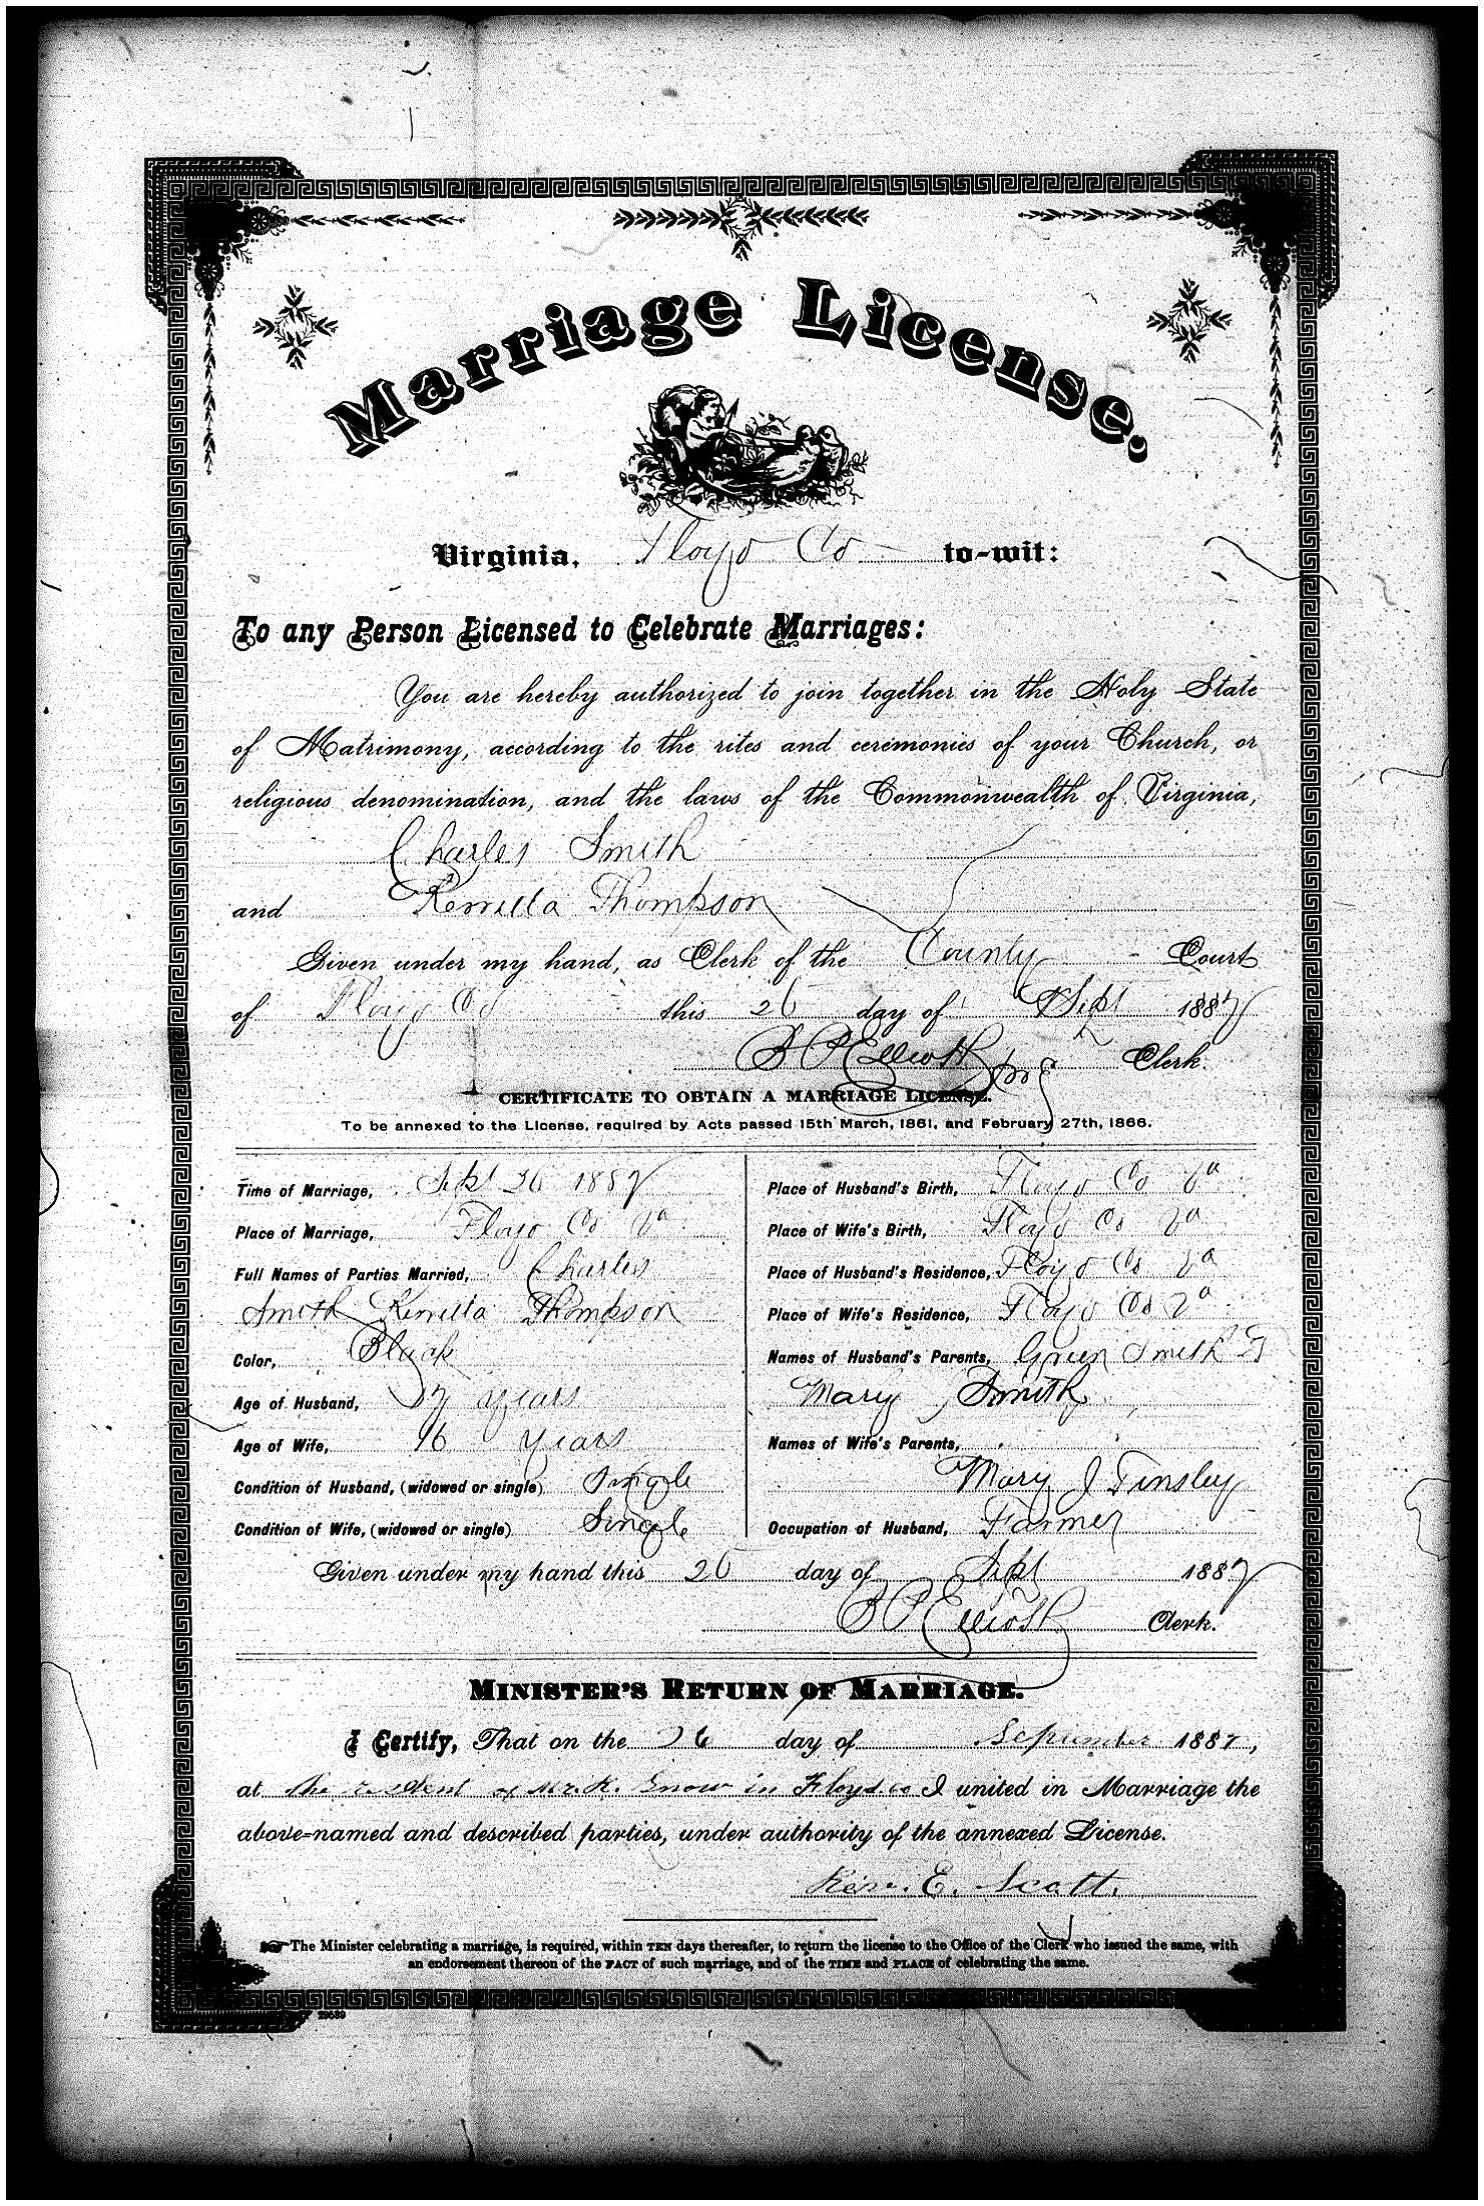 Charles mathew charlie smith 1872 1951 find a grave memorial 1887 virginia marriage certificate for charles mathew smith from library of virginia richmond va aiddatafo Images